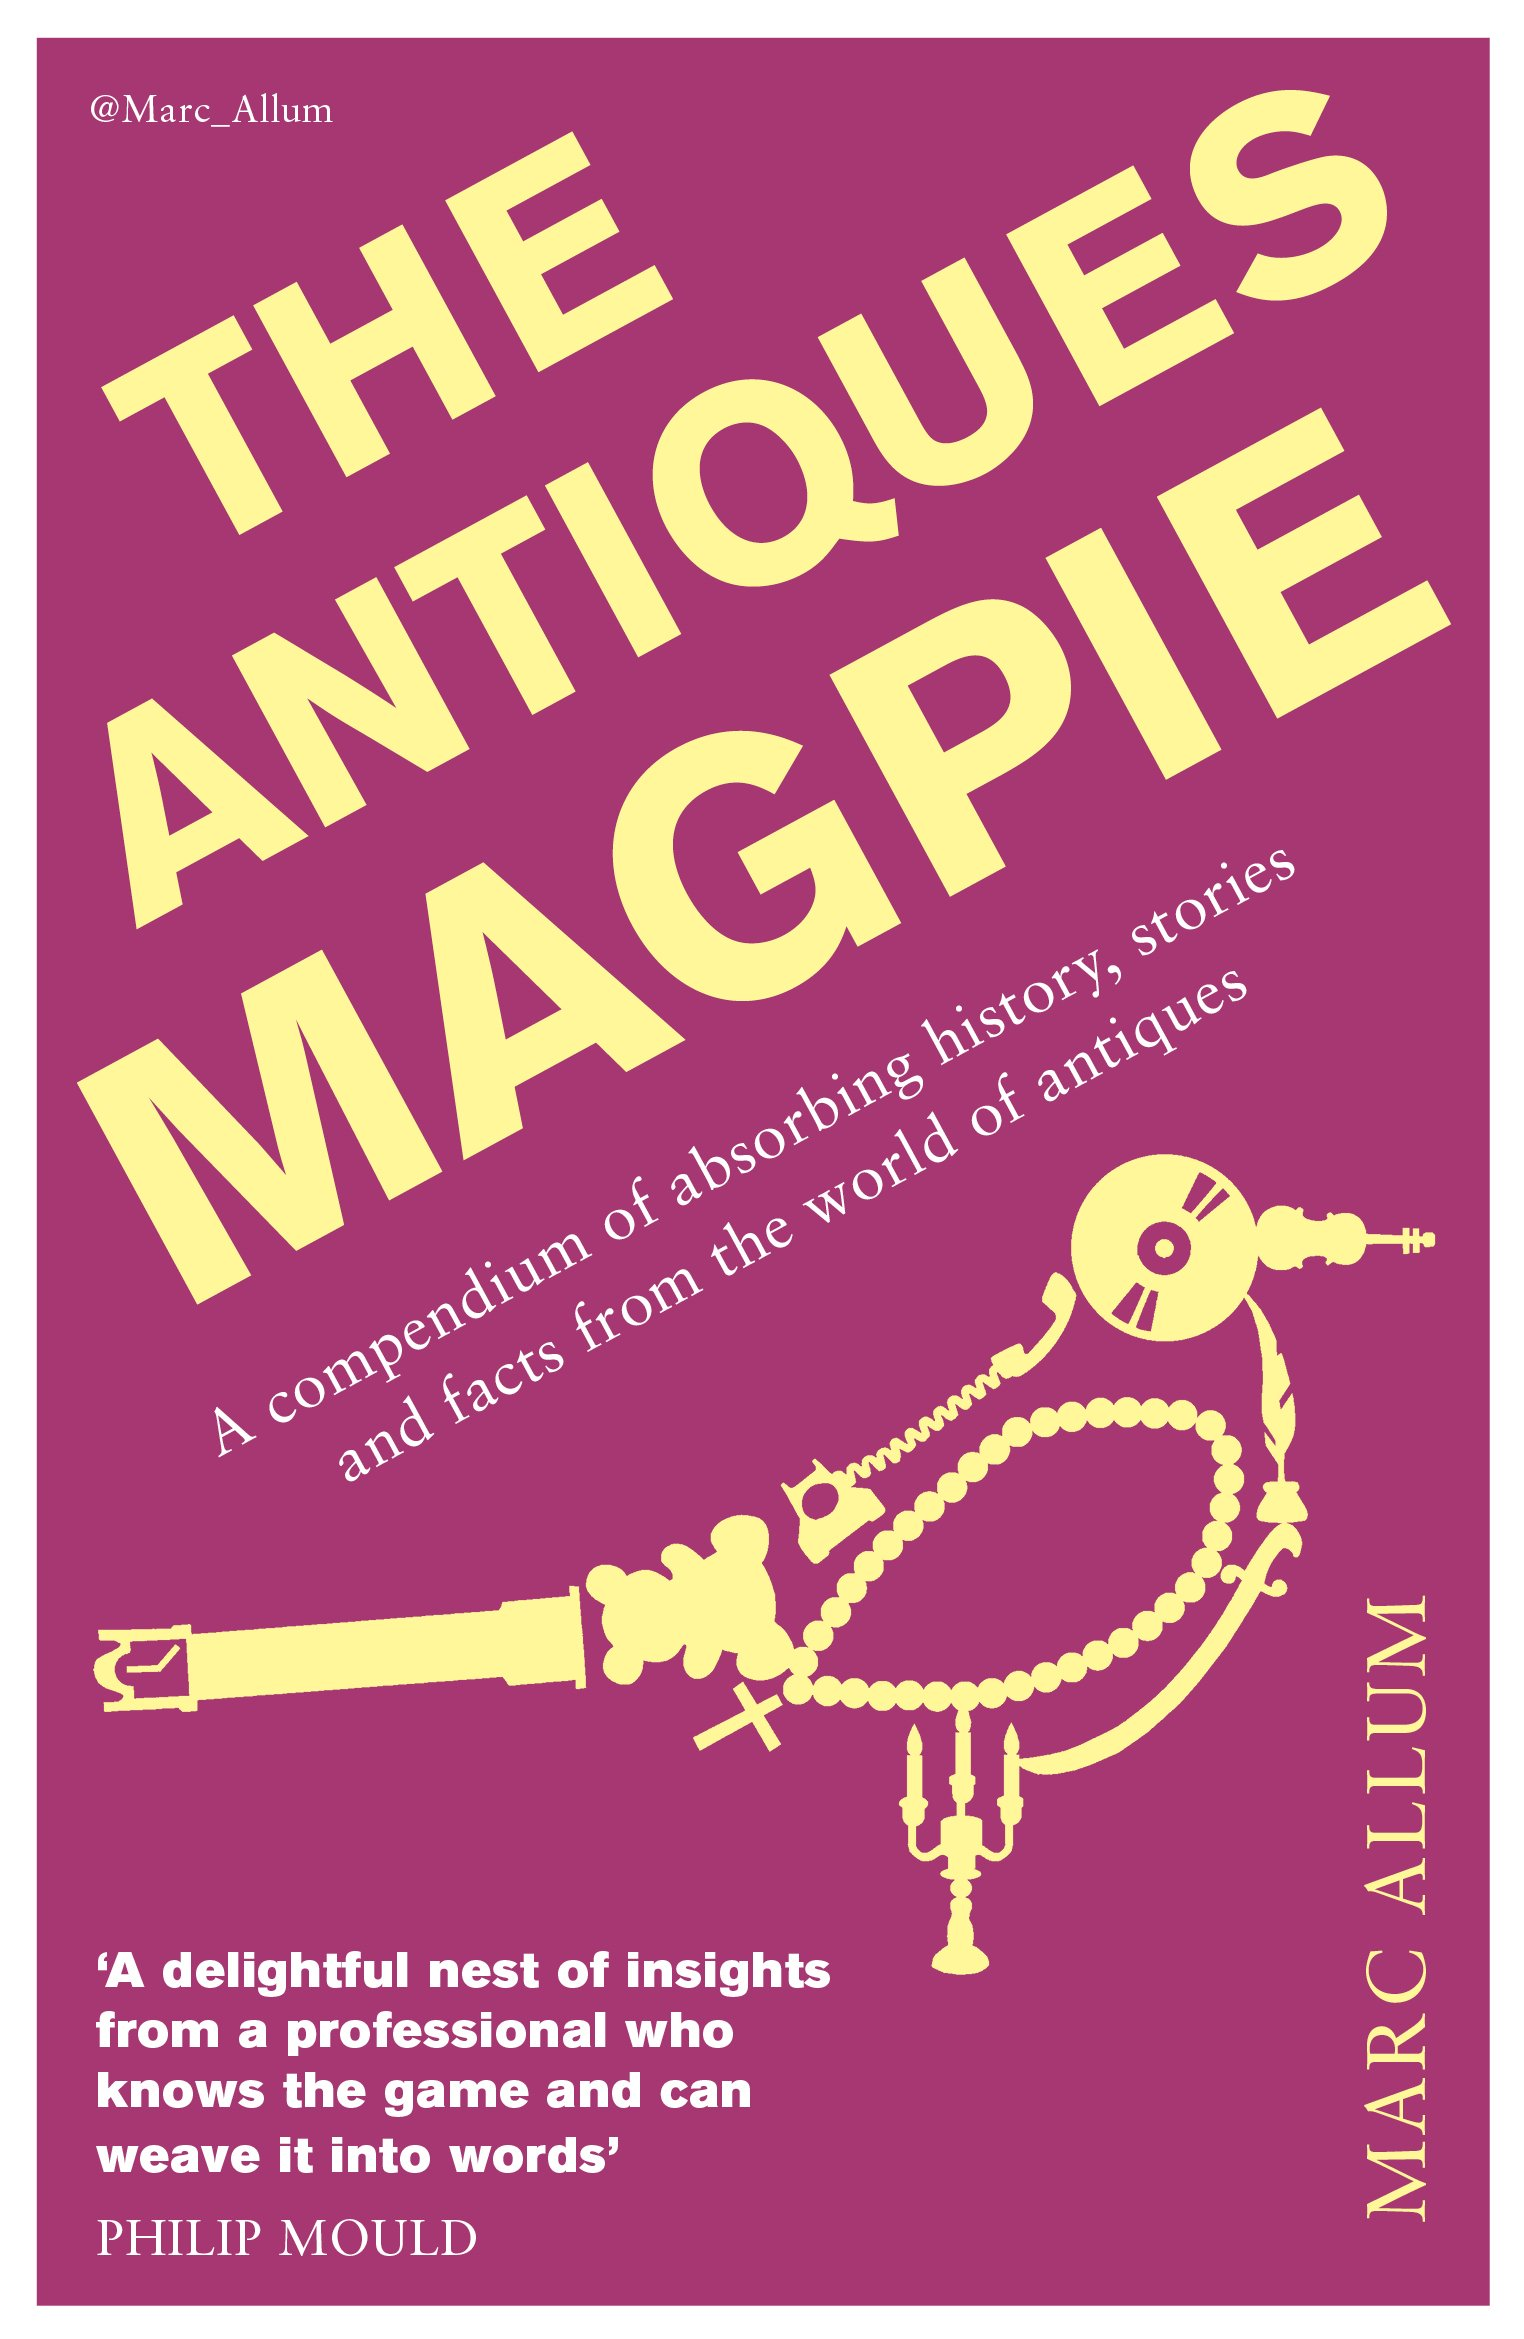 The Antiques Magpie: A Compendium of Absorbing History, Stories, and Facts from the World of Antiques